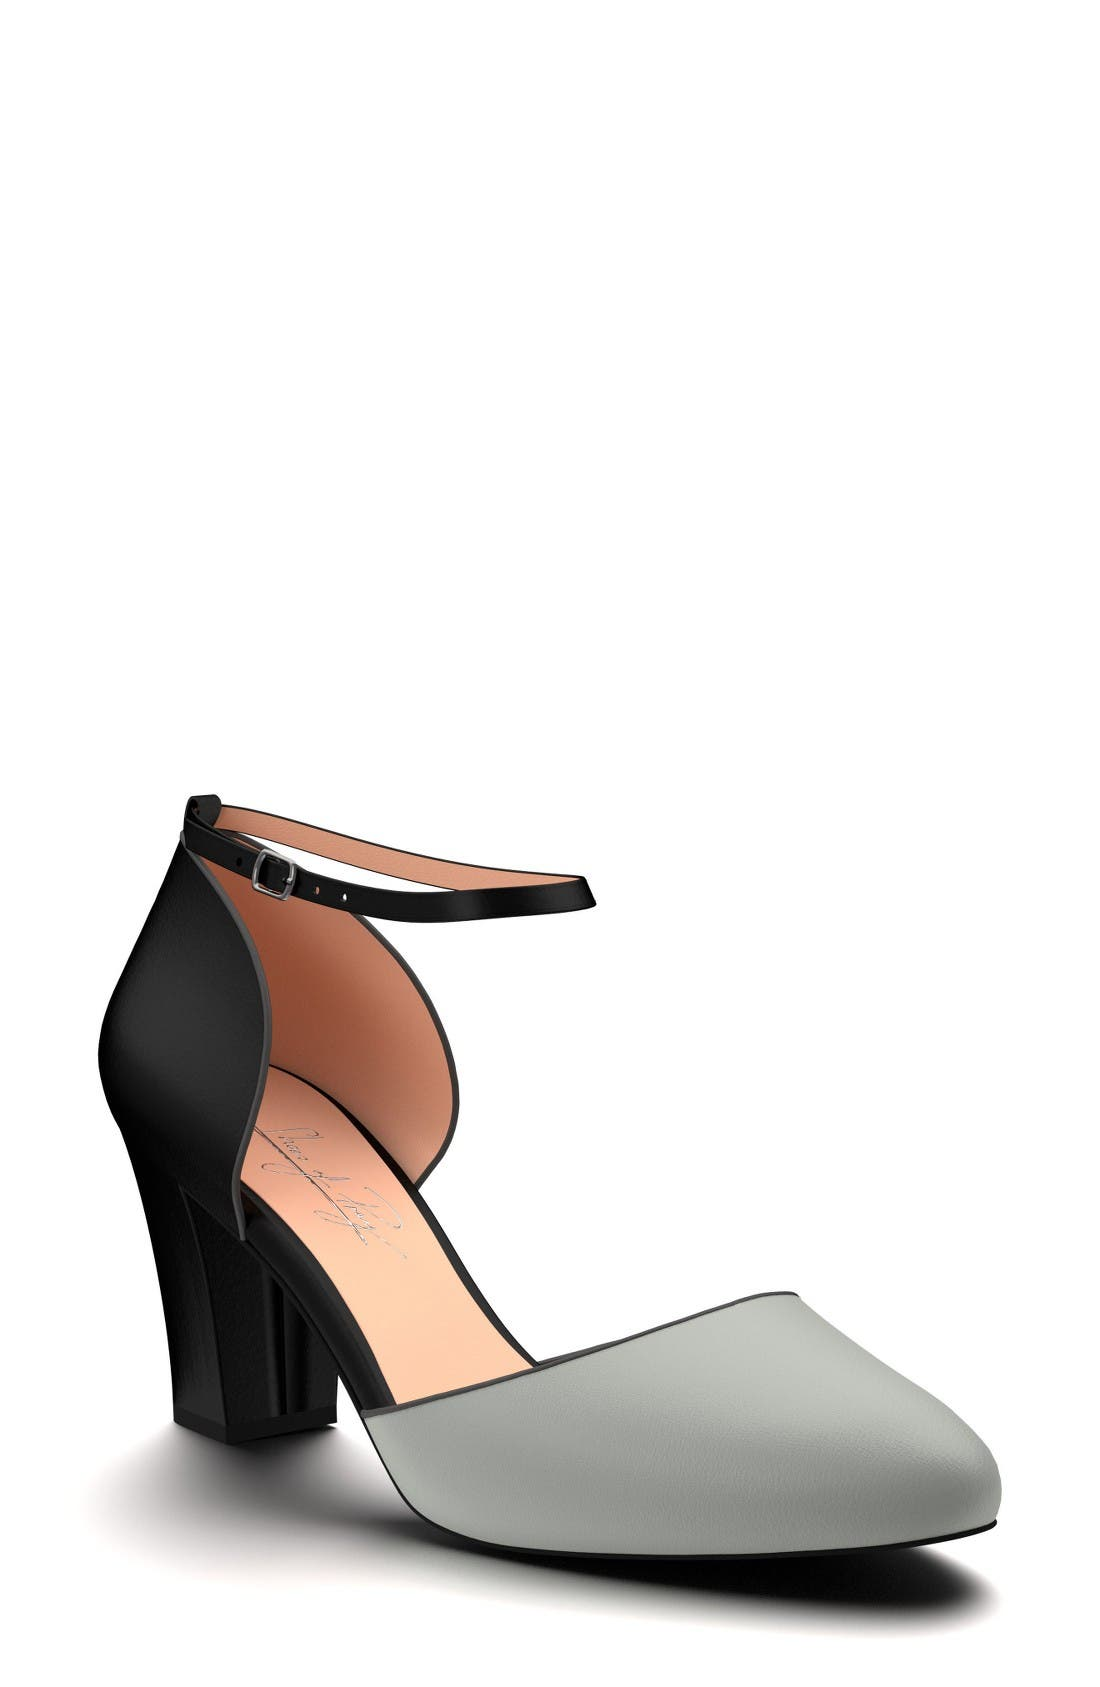 SHOES OF PREY Block Heel d'Orsay Pump